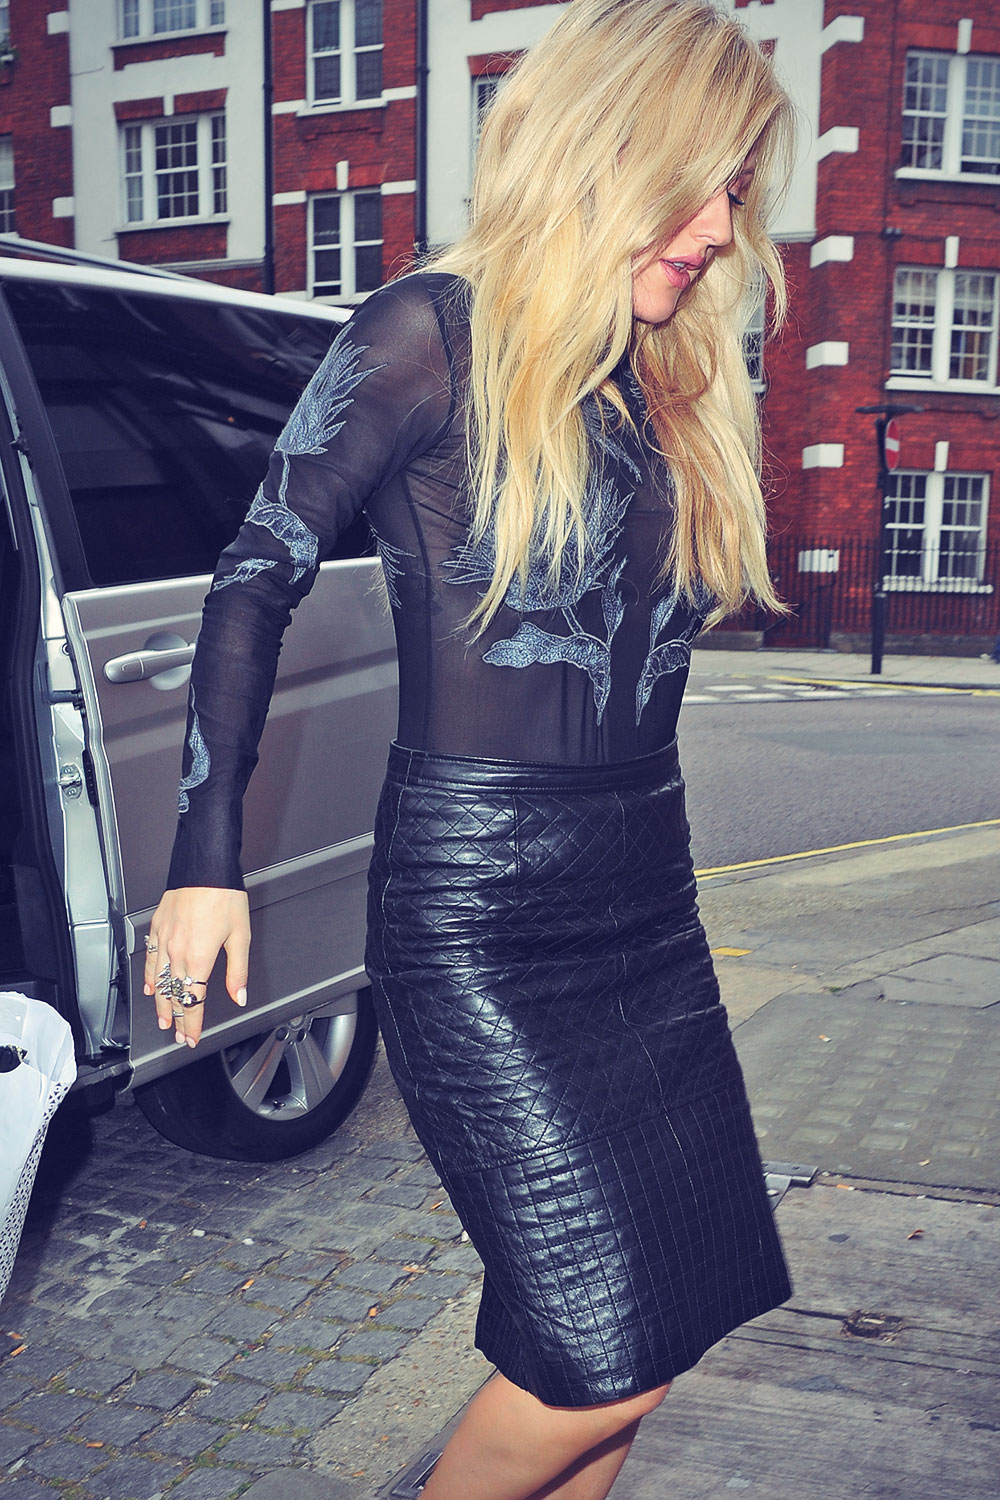 Ellie Goulding attends Topshop Unique show during London Fashion Week